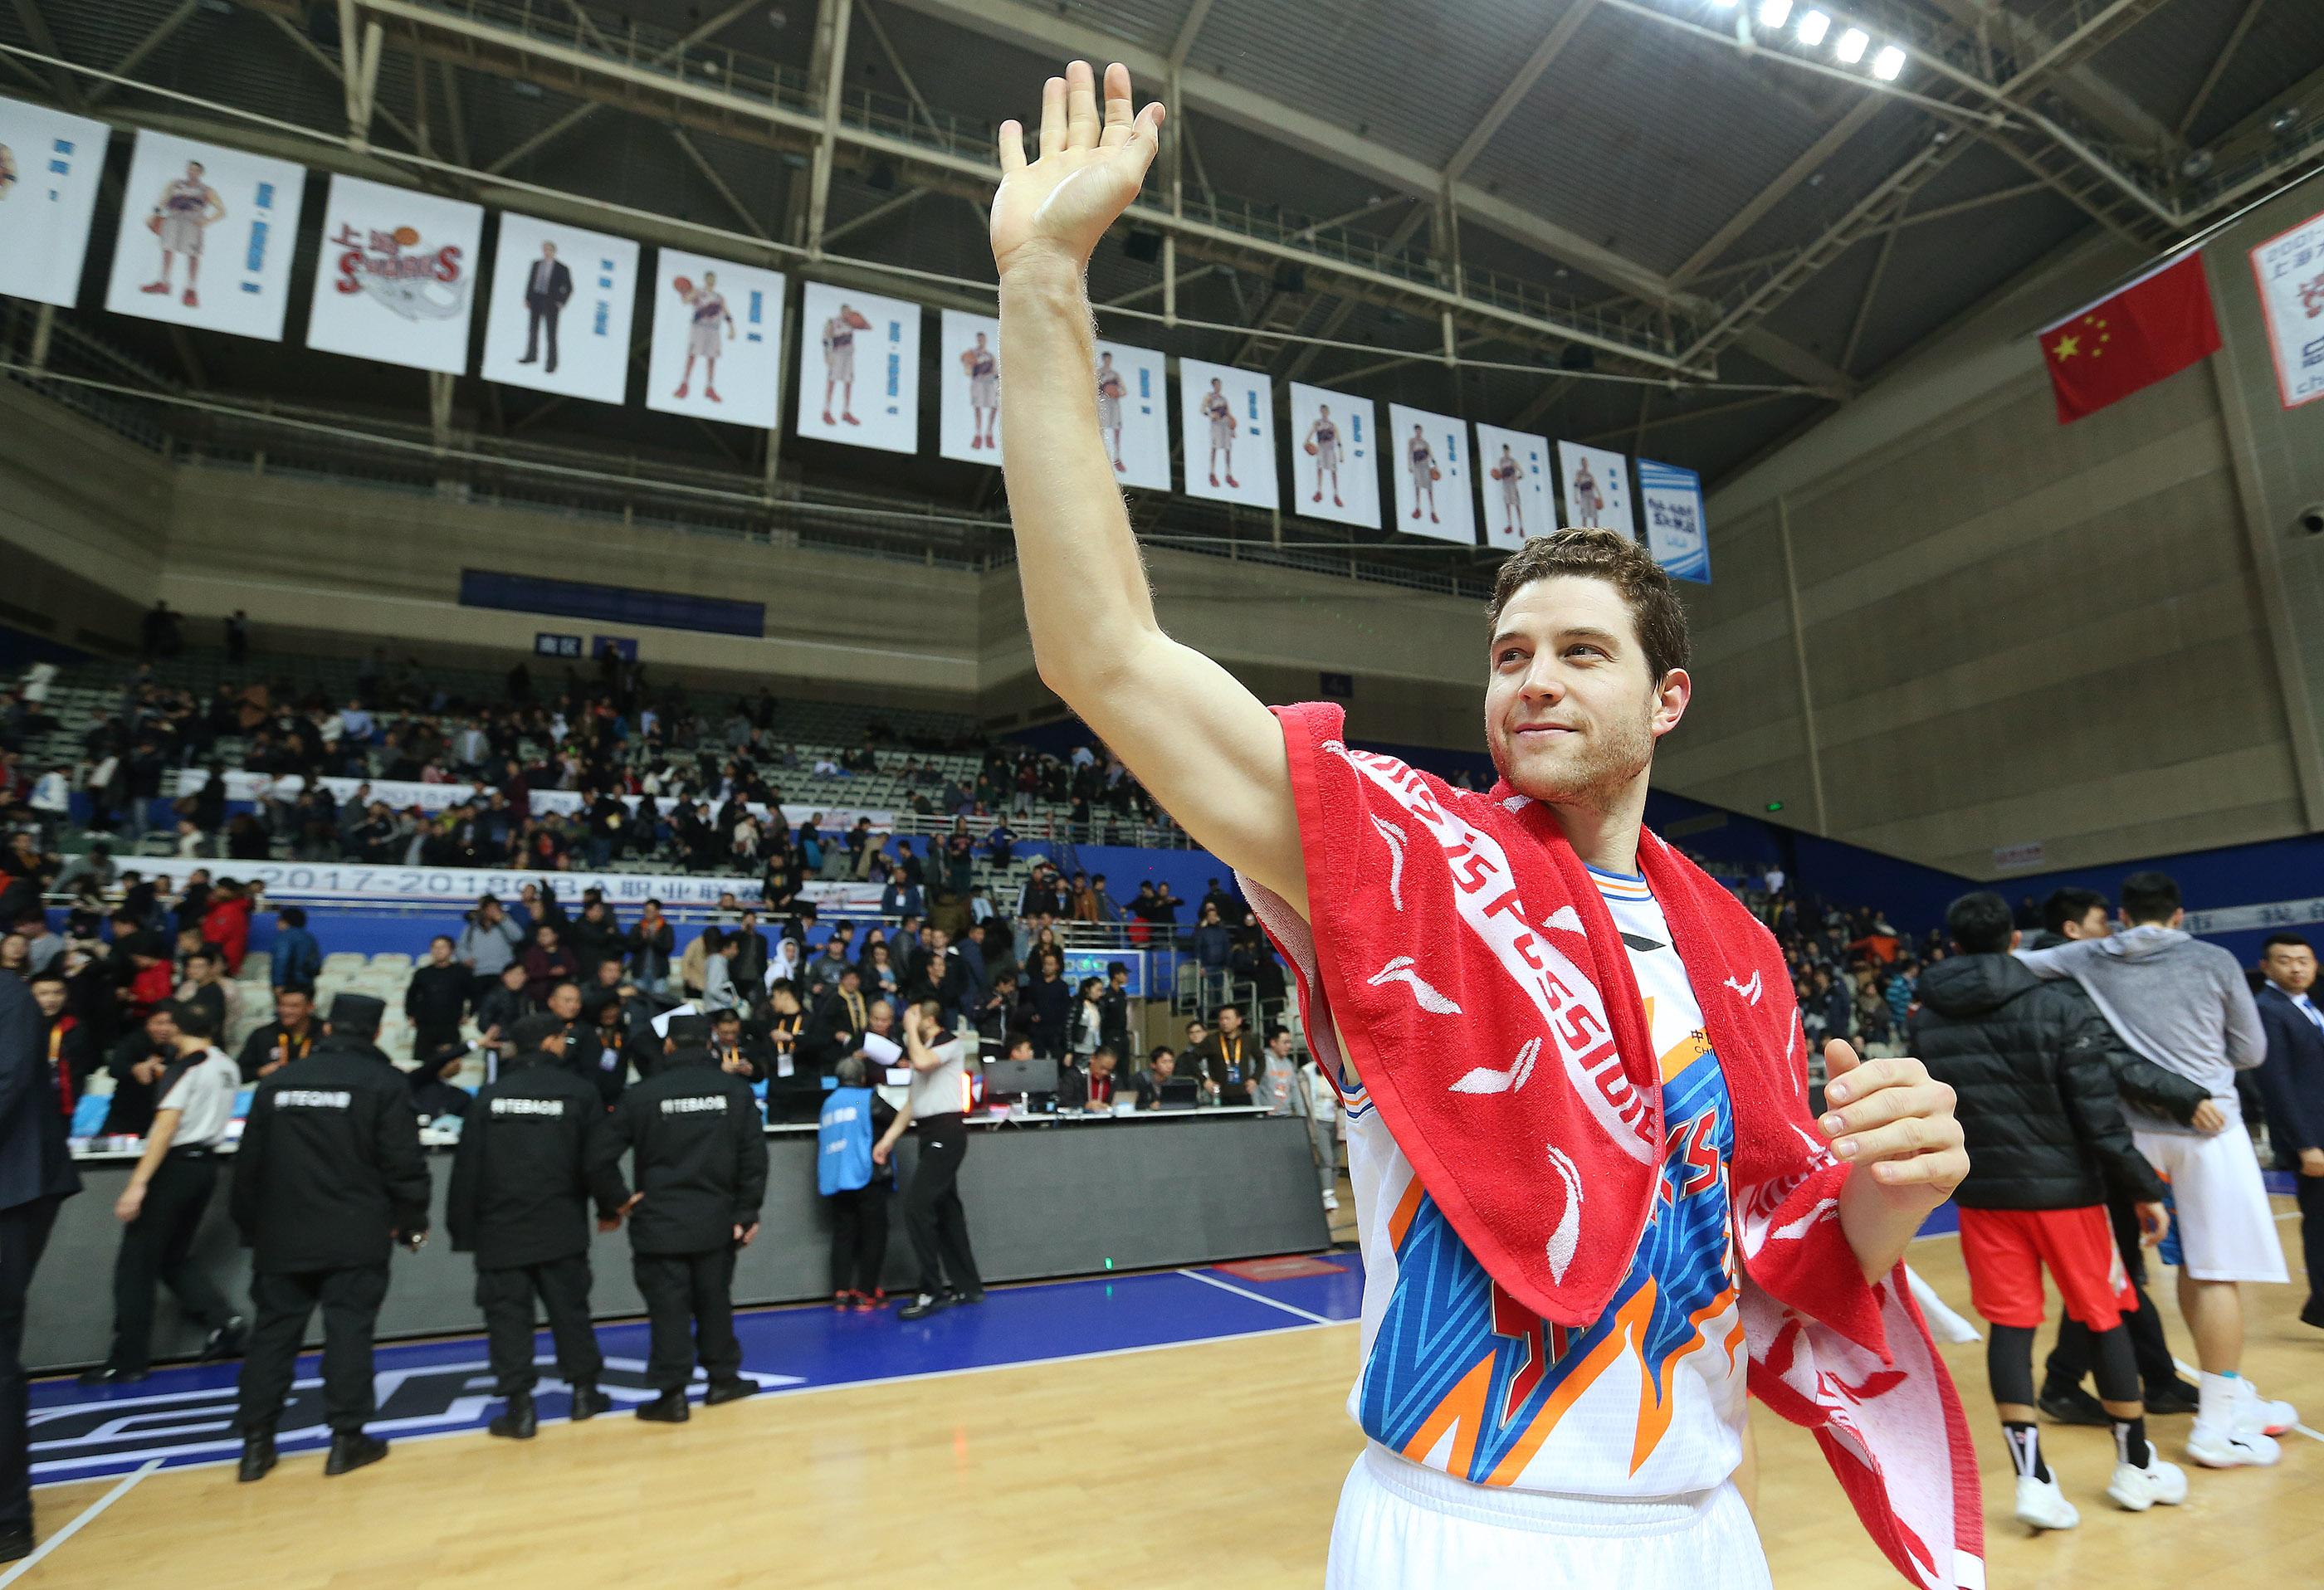 Jimmer Fredette waves to fans after a game with the Bayi Rockets in Shanghai on Jan. 19, 2018. Fredette, whose career has included stops in Provo, multiple NBA cities, Shanghai and Greece, is now looking for his next basketball home after ending his tenure with Panathinaikos.